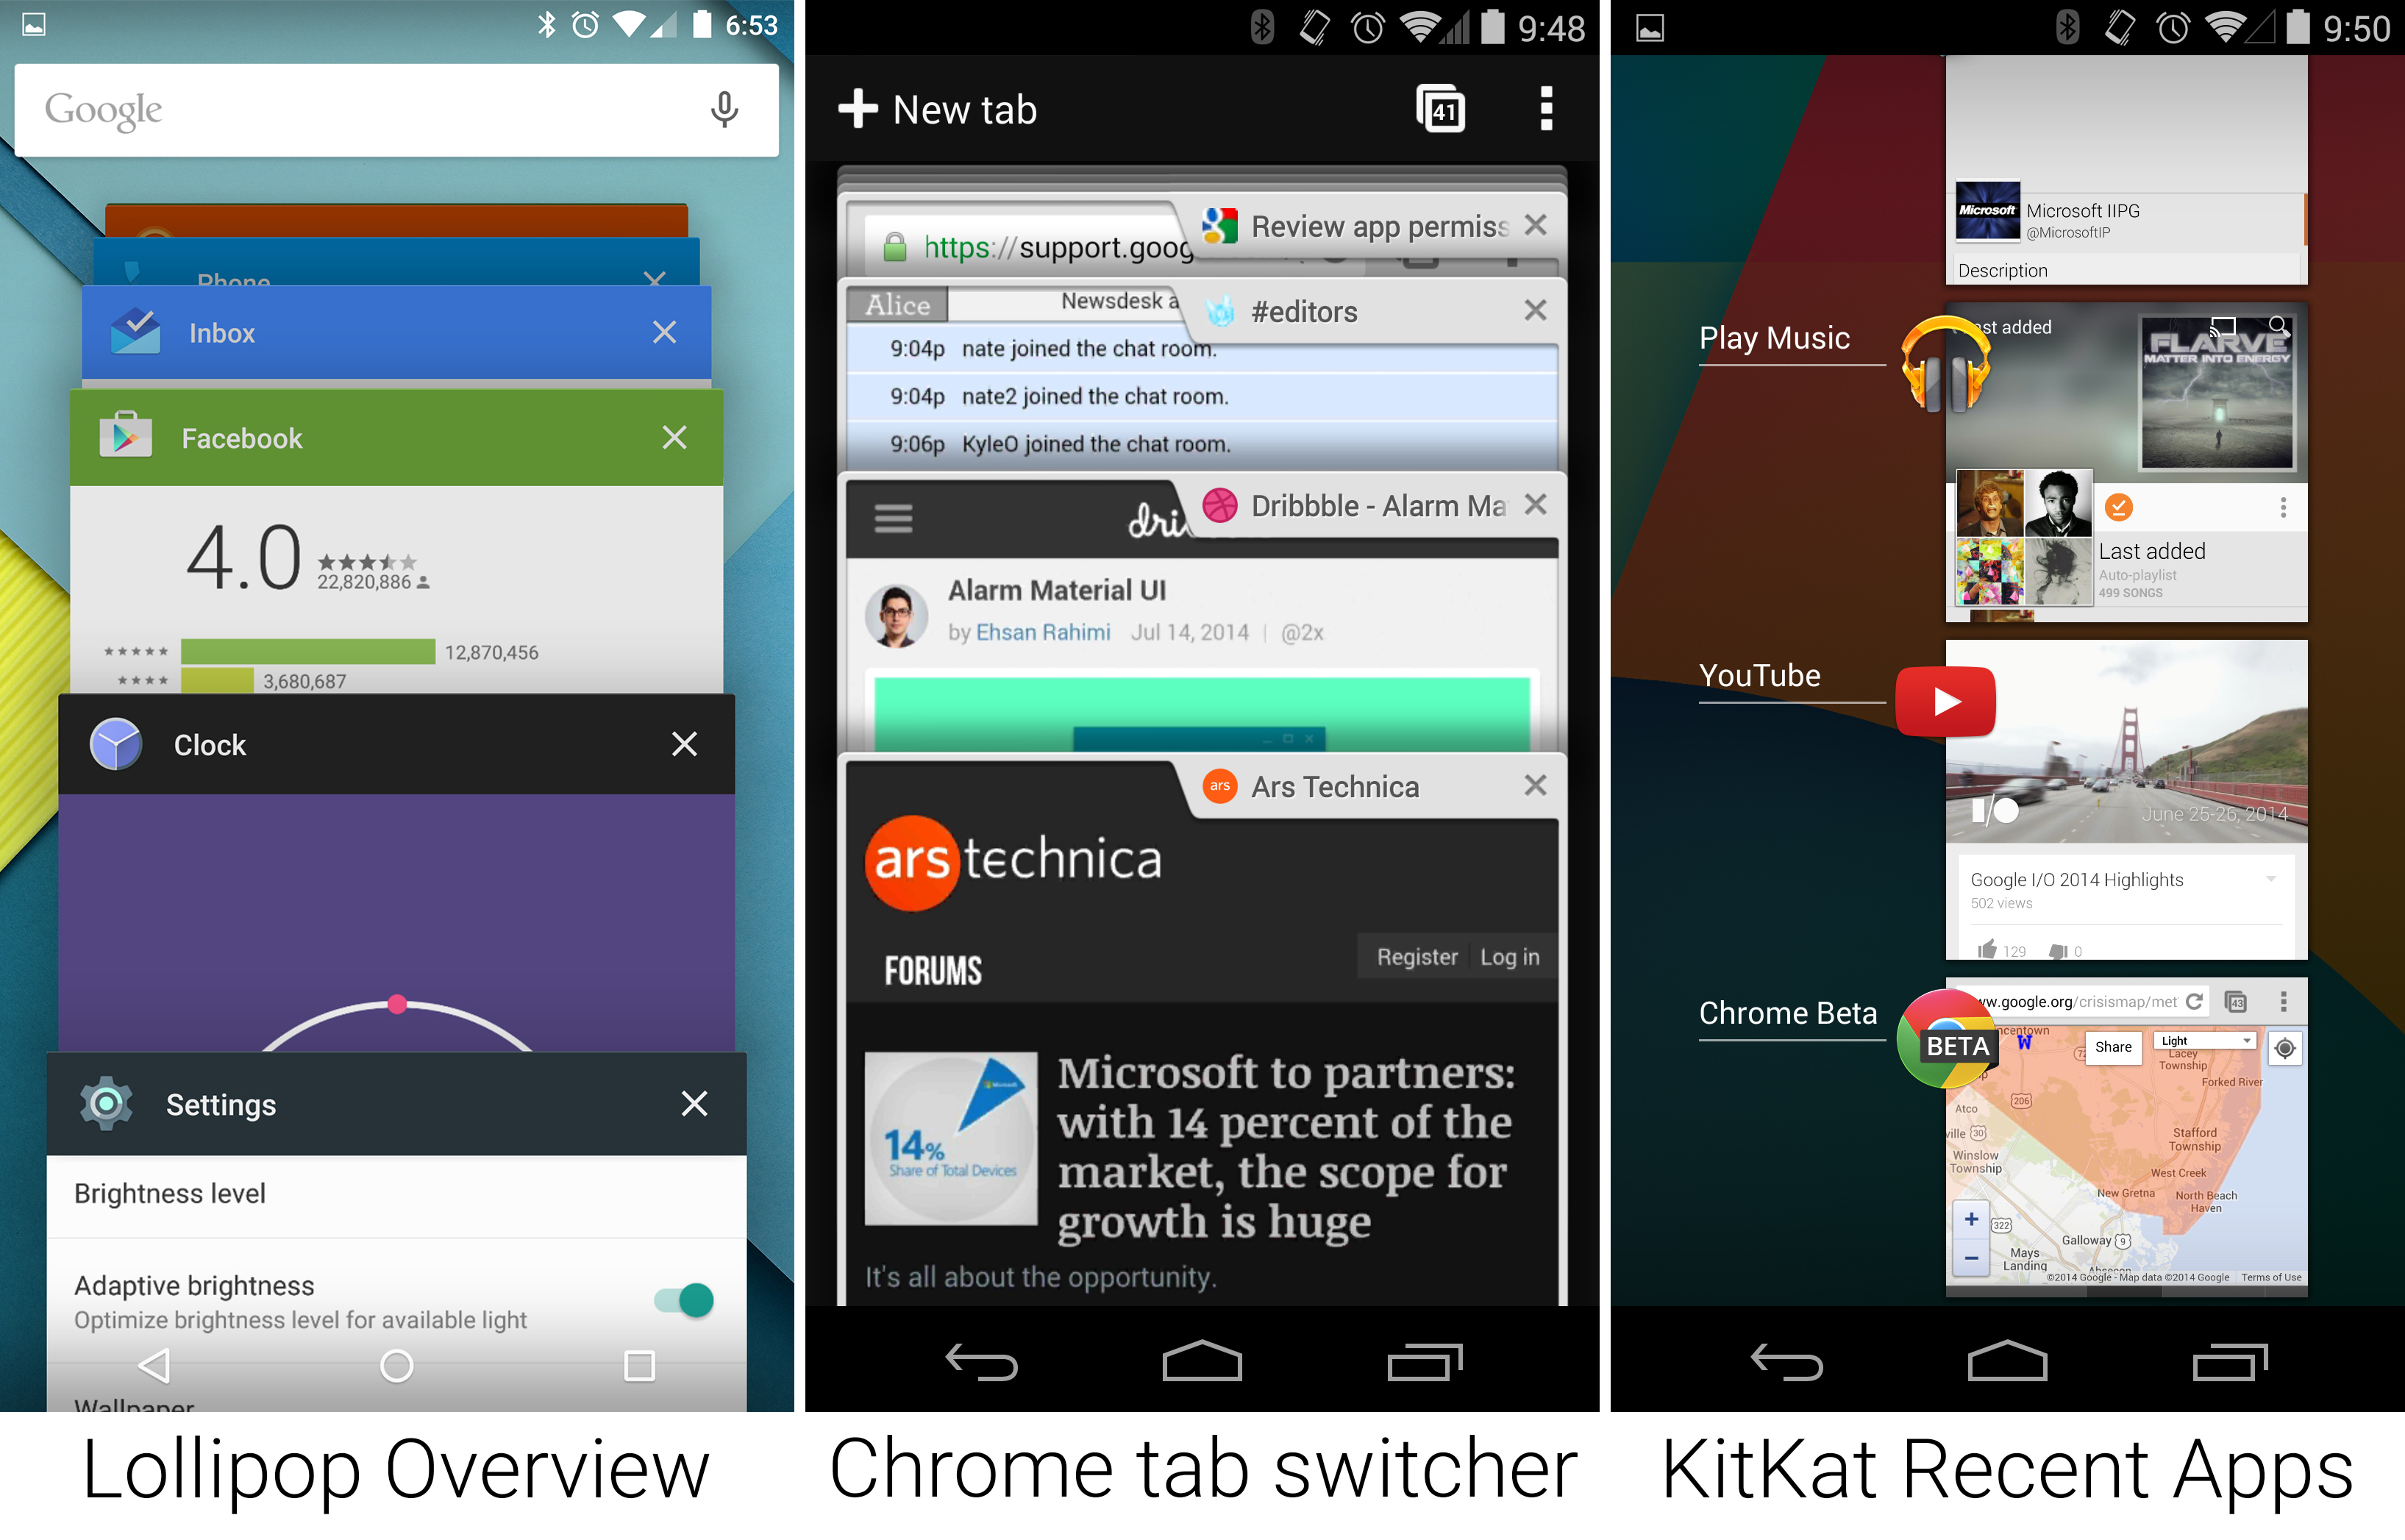 Android 5.0 Lollipop, thoroughly reviewed | Ars Technica